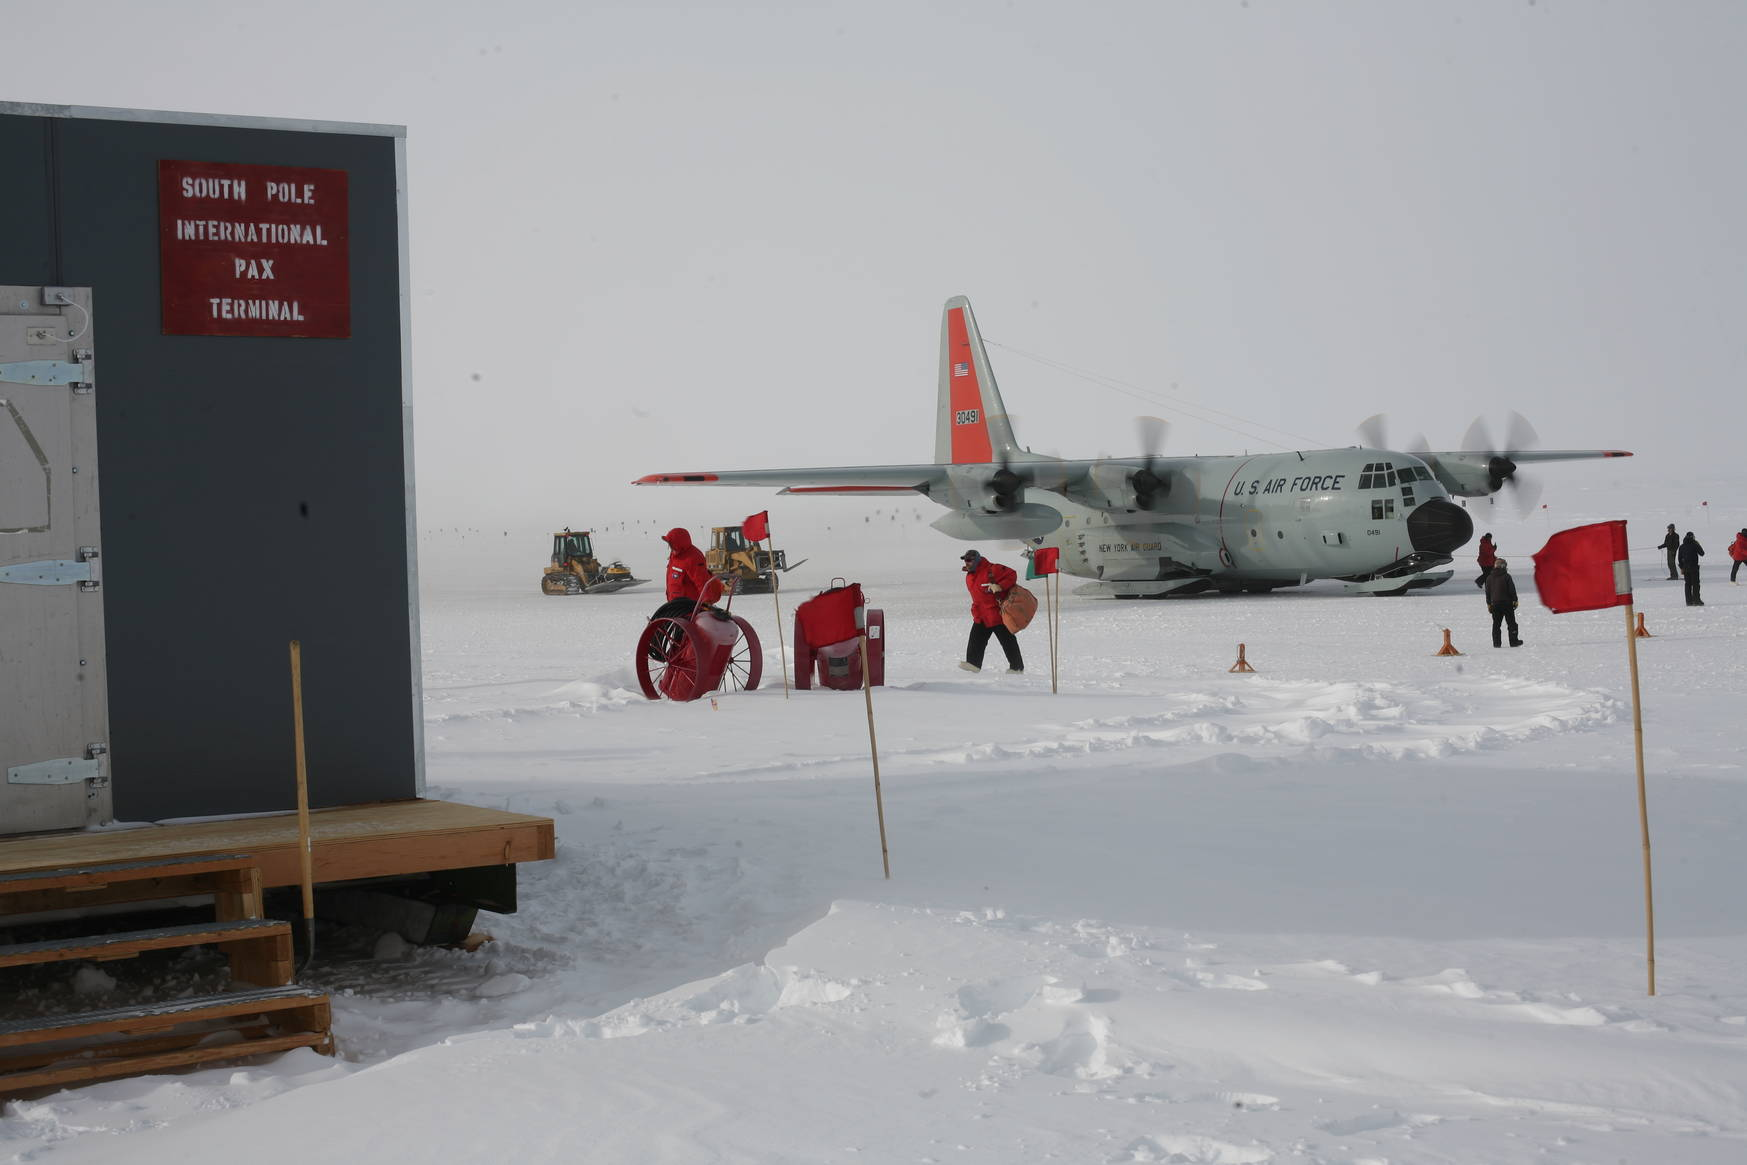 Arrival at the South Pole Passenger terminal. Psssst, secret: It's really just a small metal shack.